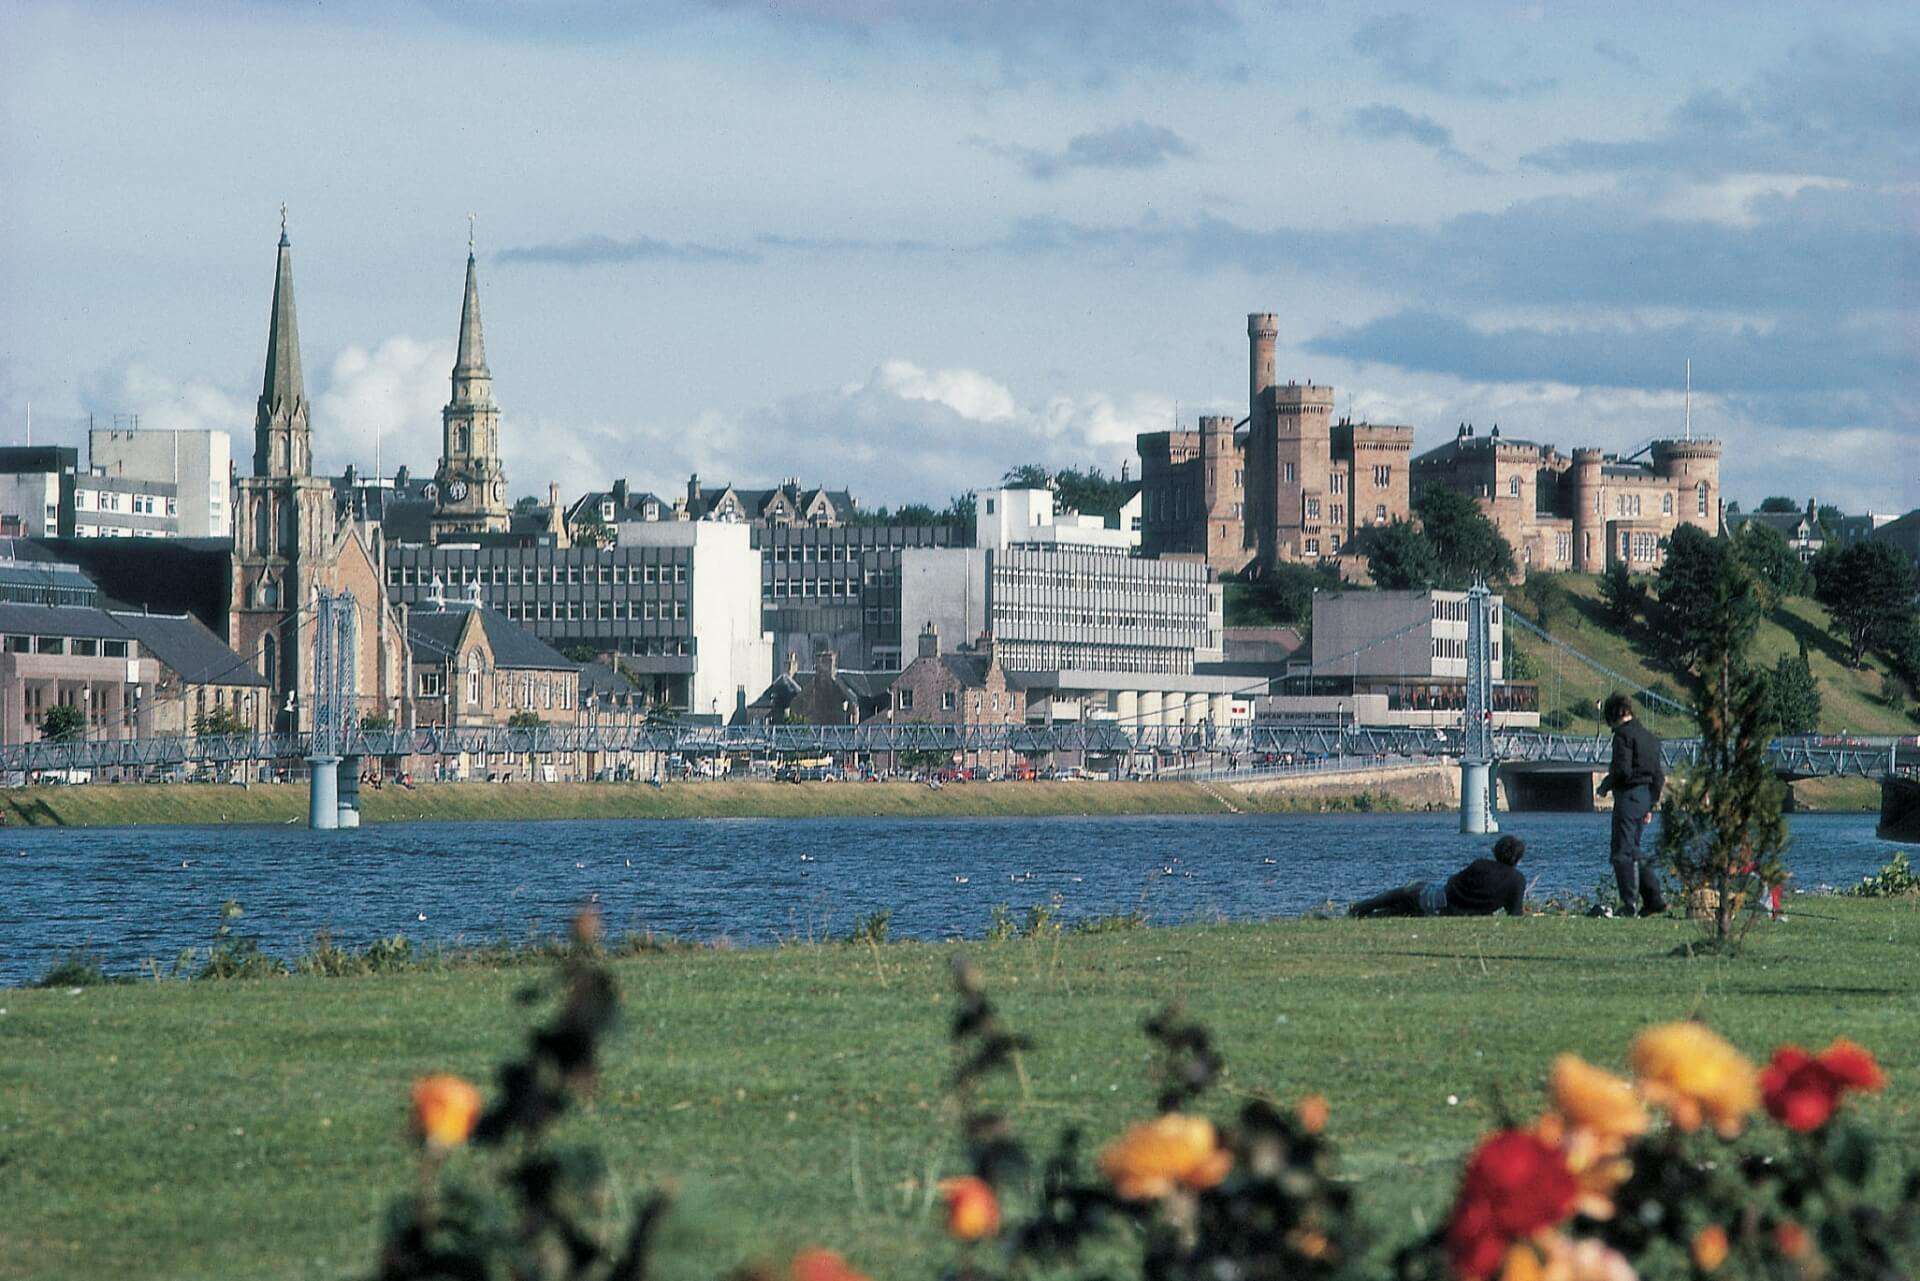 Inverness, capital of the Highlands